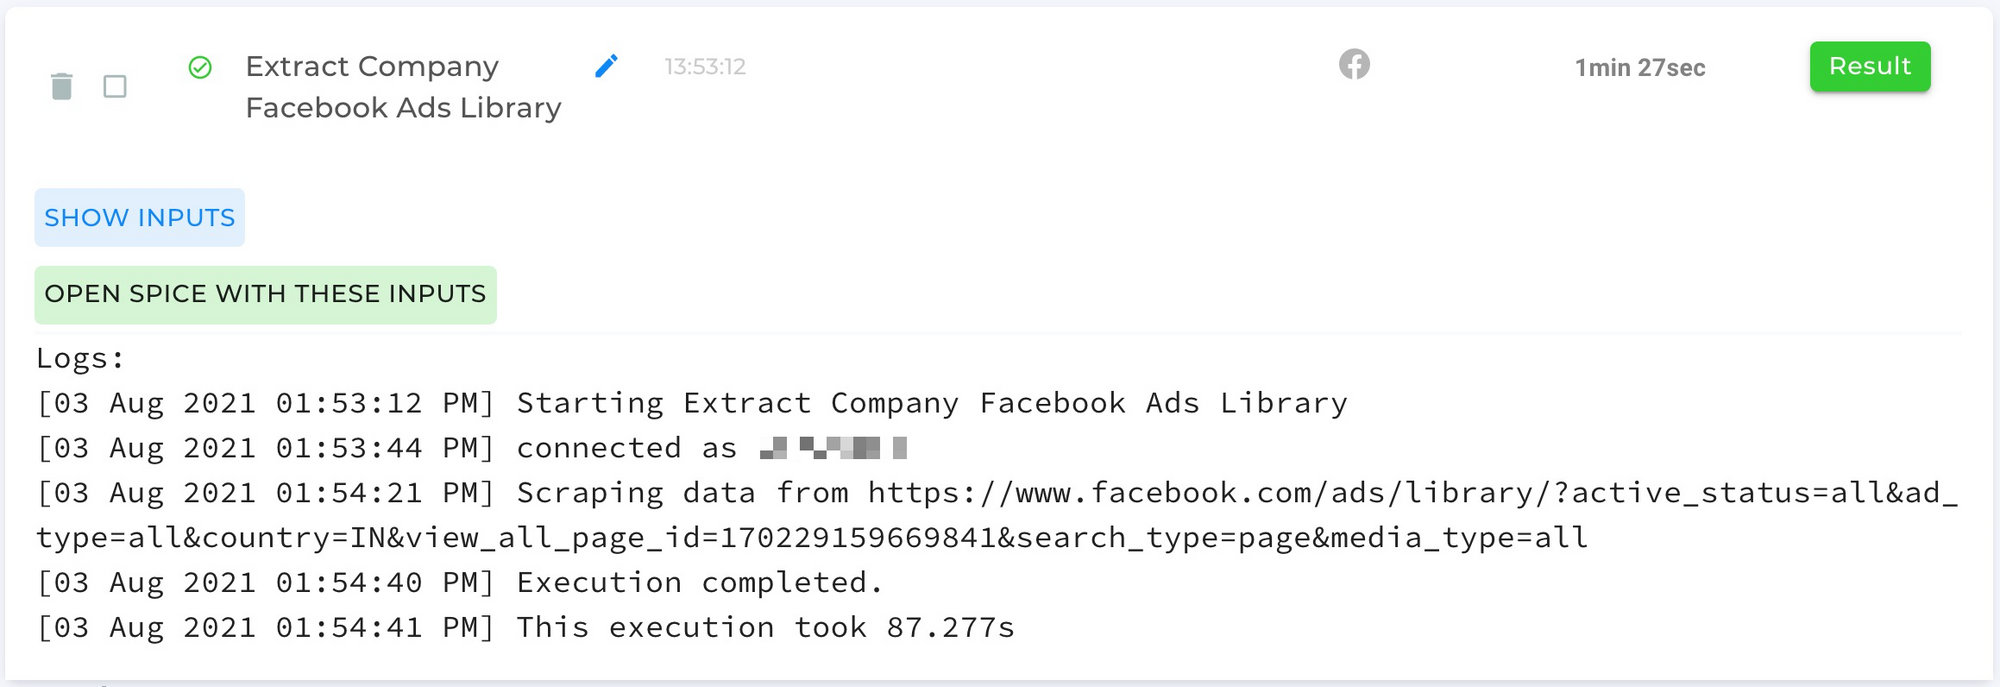 Extract-Company-Facebook-Ads-Library-logs